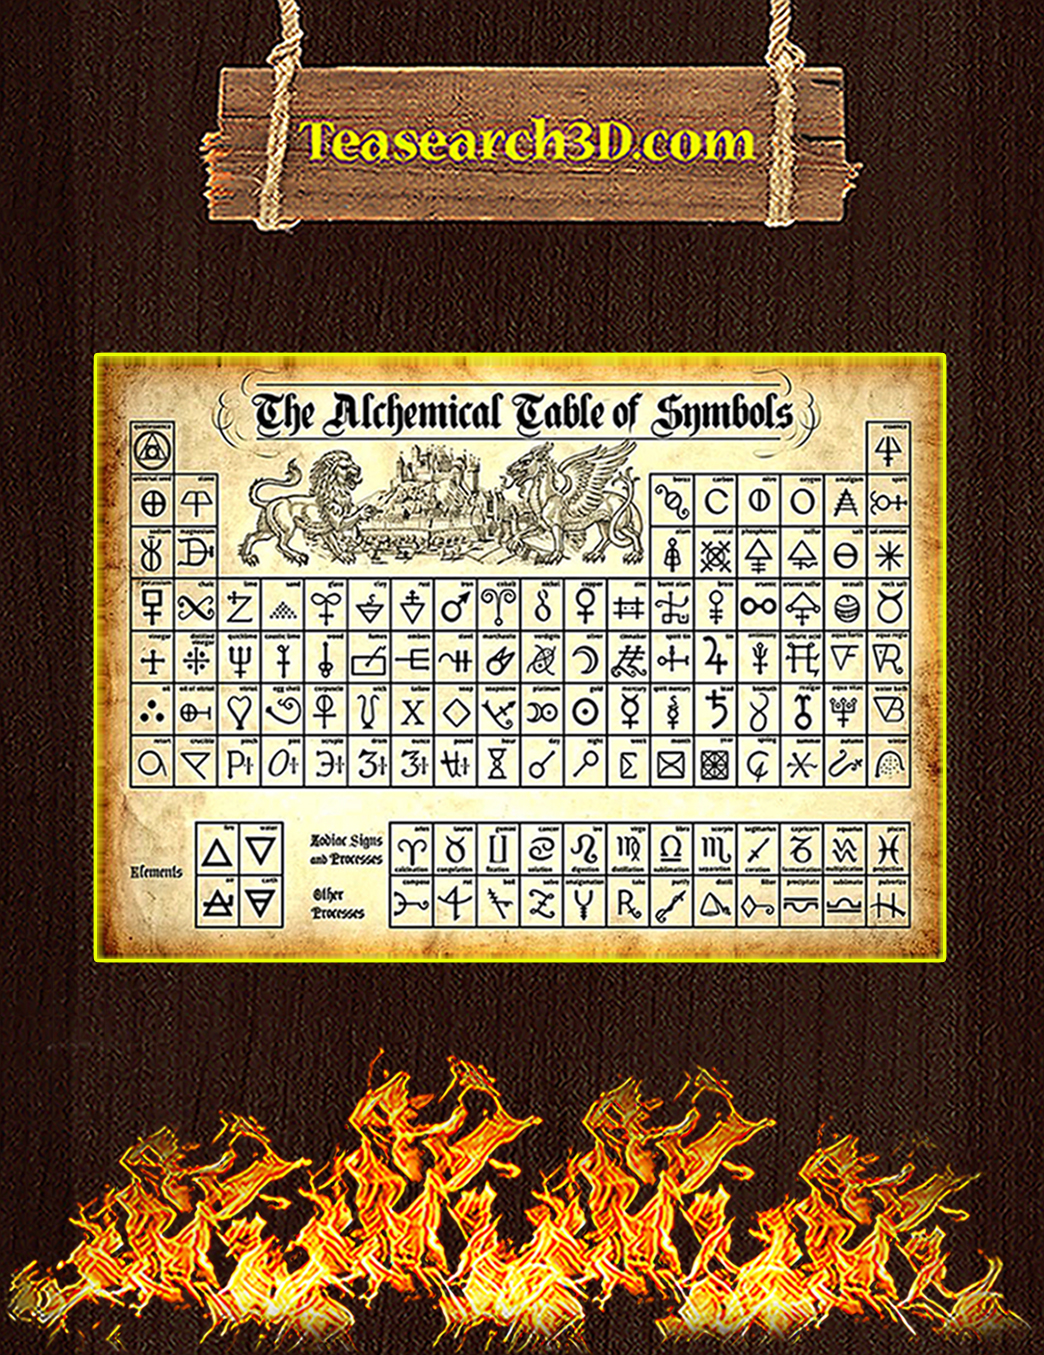 The alchemical table of symbols poster A1